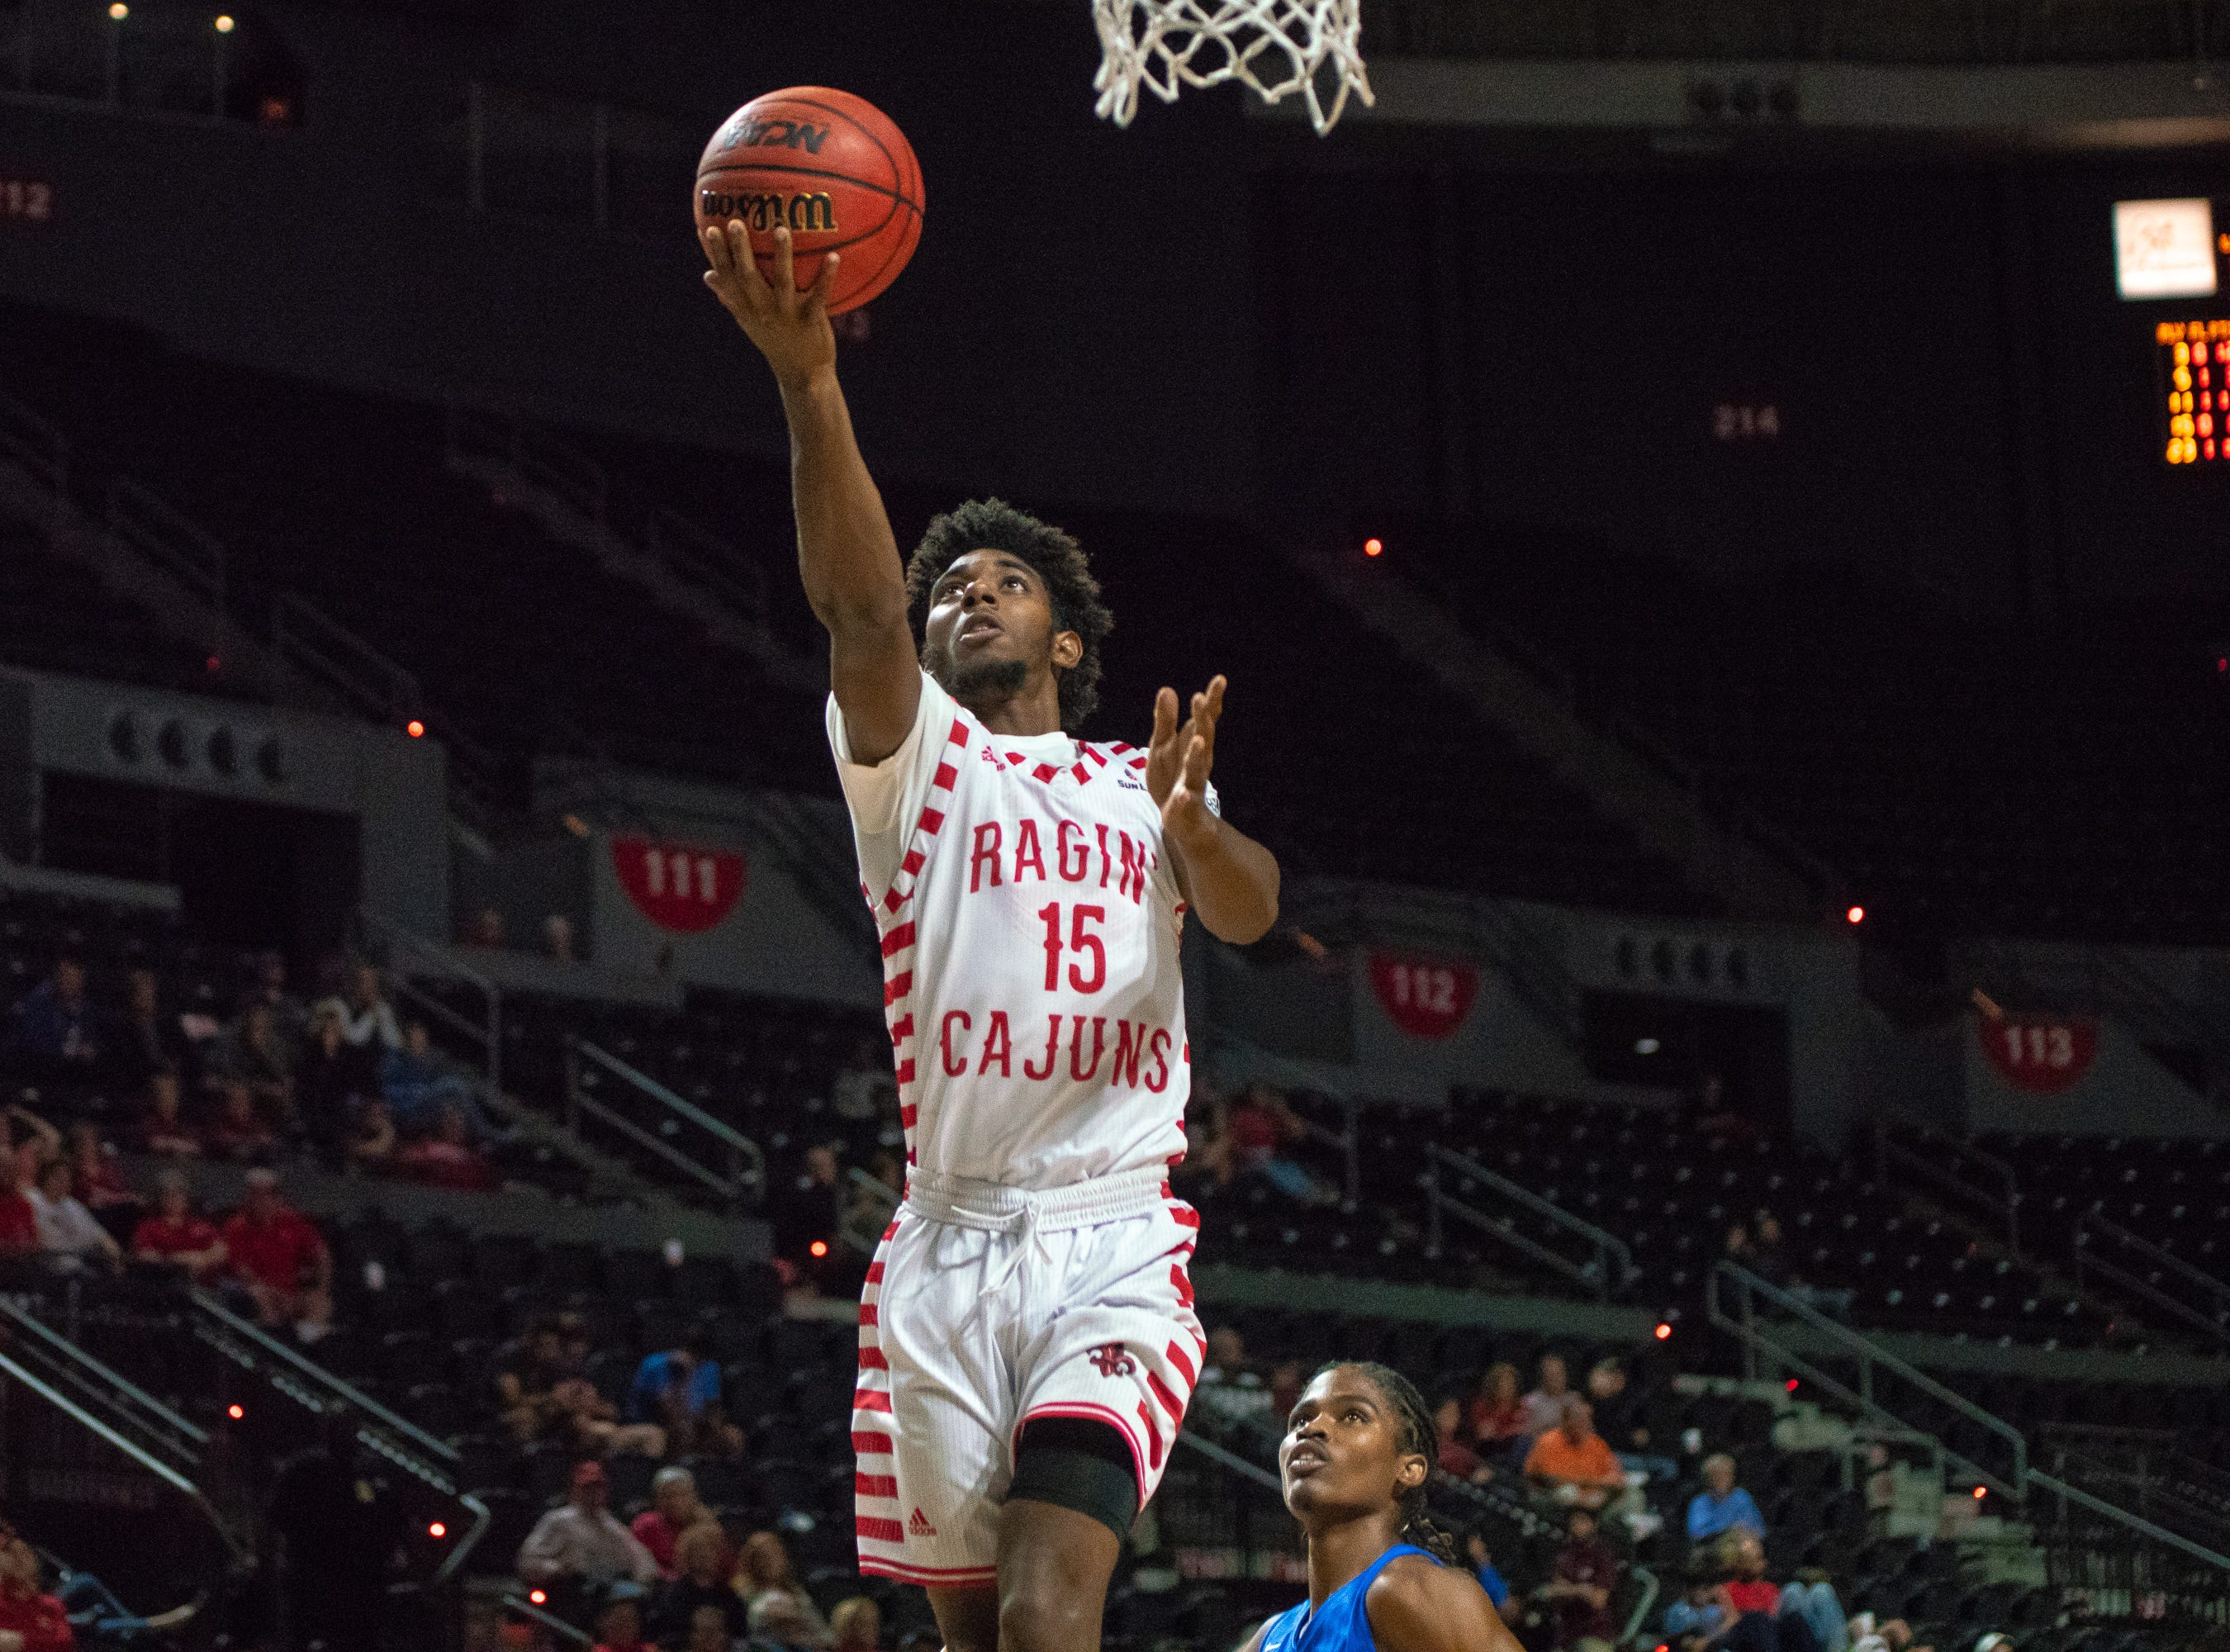 UL's P.J. Hardy goes up for an open layup as the Ragin' Cajuns take on the University of the Virgin Islands Buccaneers at the Cajundome on Nov. 6, 2018.